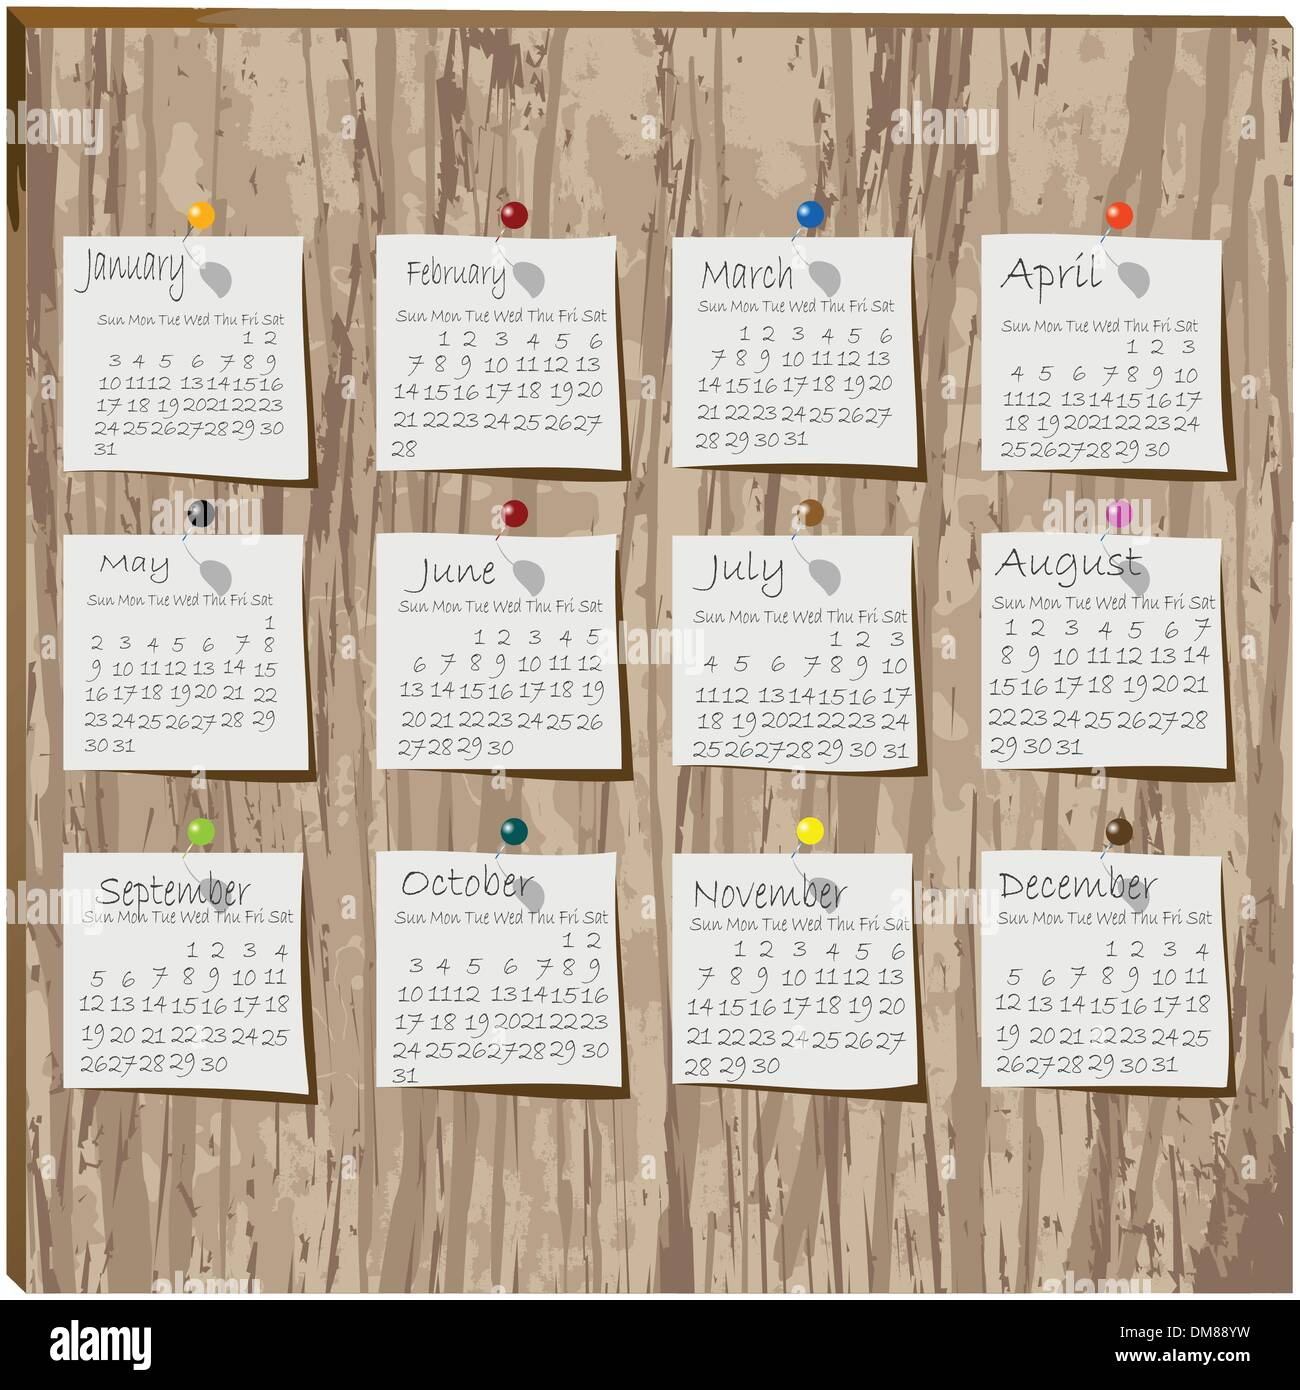 Calendar paper on wood - Stock Image